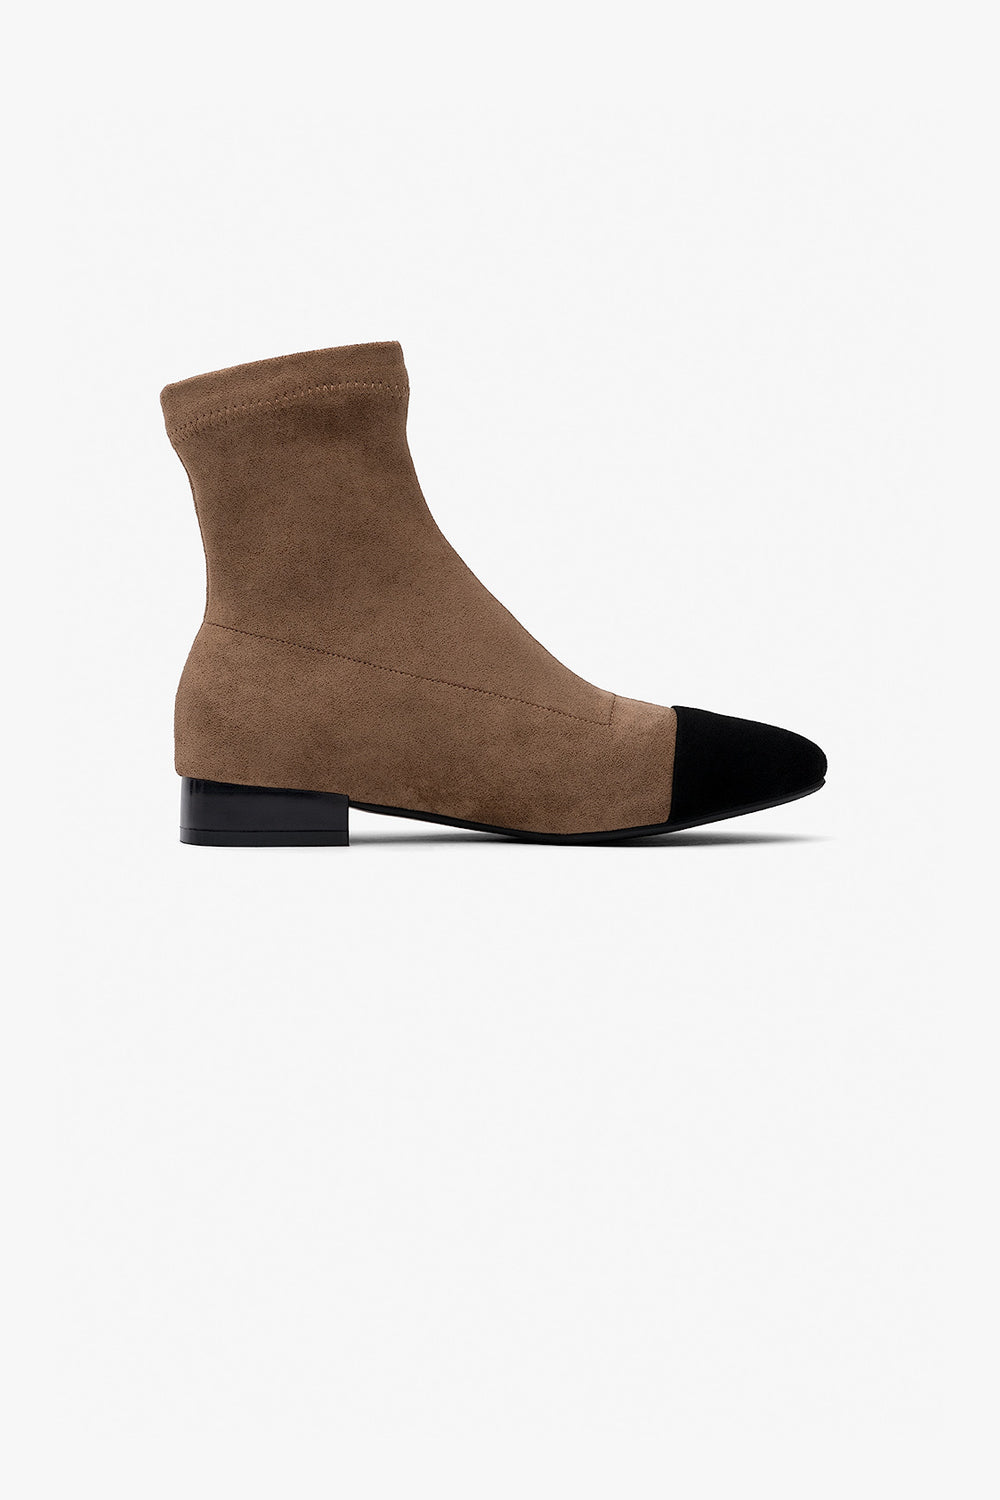 Two-Tone Suede Boots